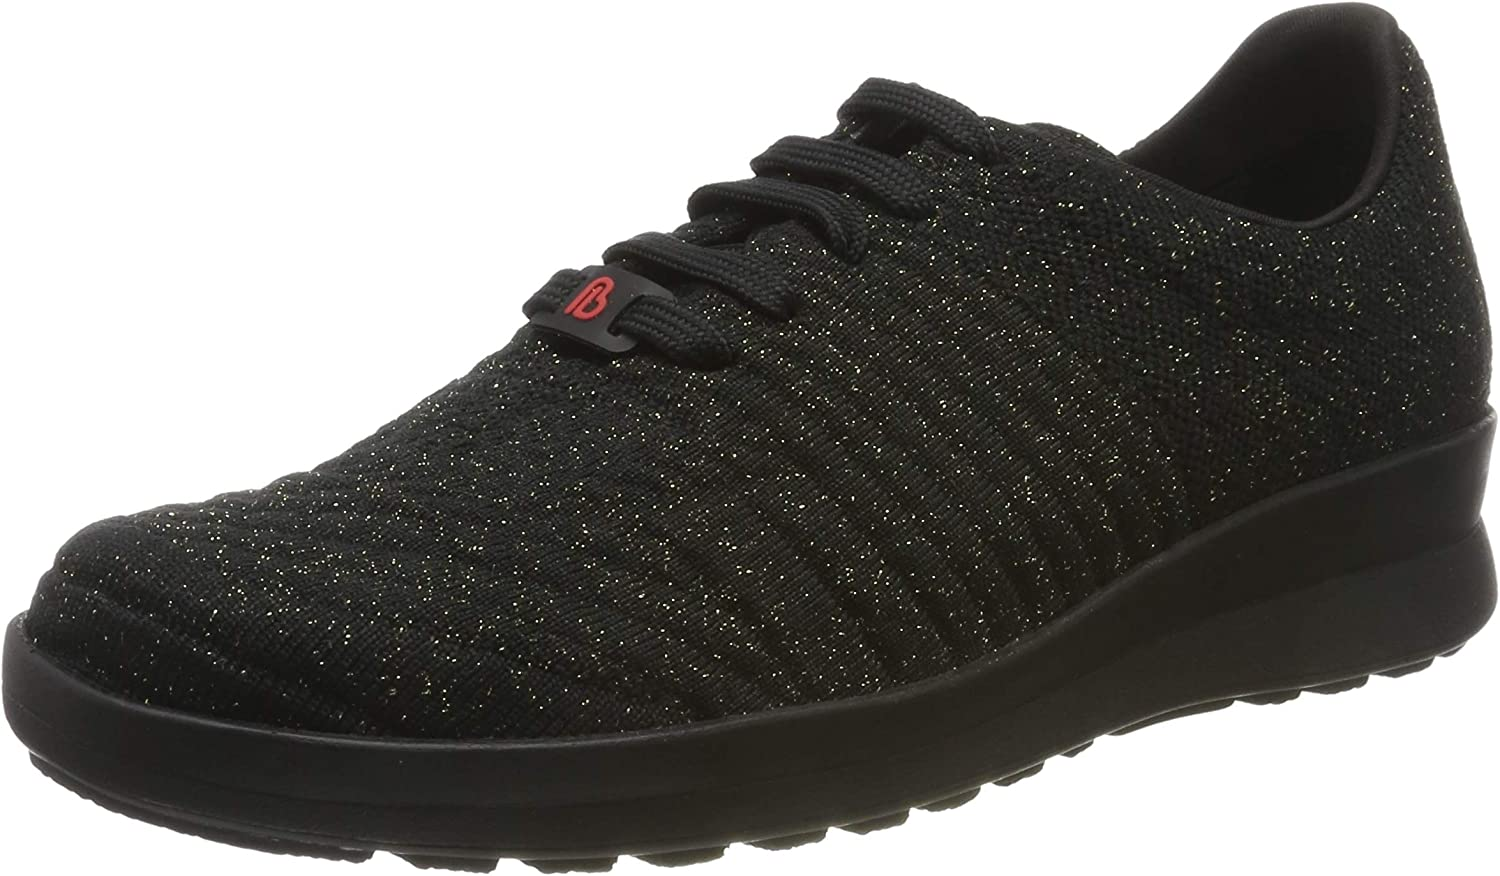 Berkemann Women's Max 76% OFF Low-top Trainers Ranking integrated 1st place